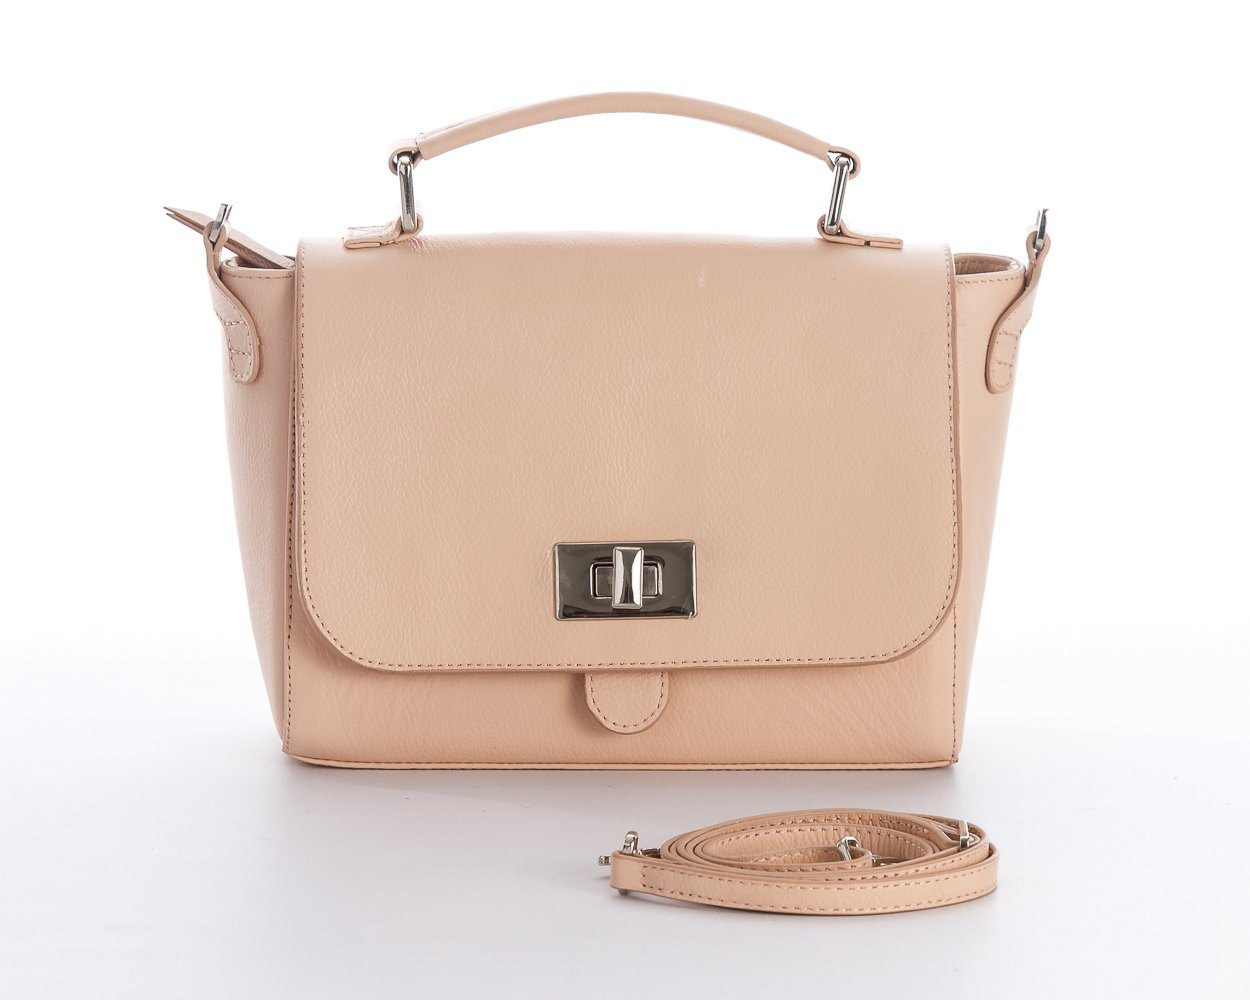 Priscilla Shoulder Bag - The Gaspy Collection